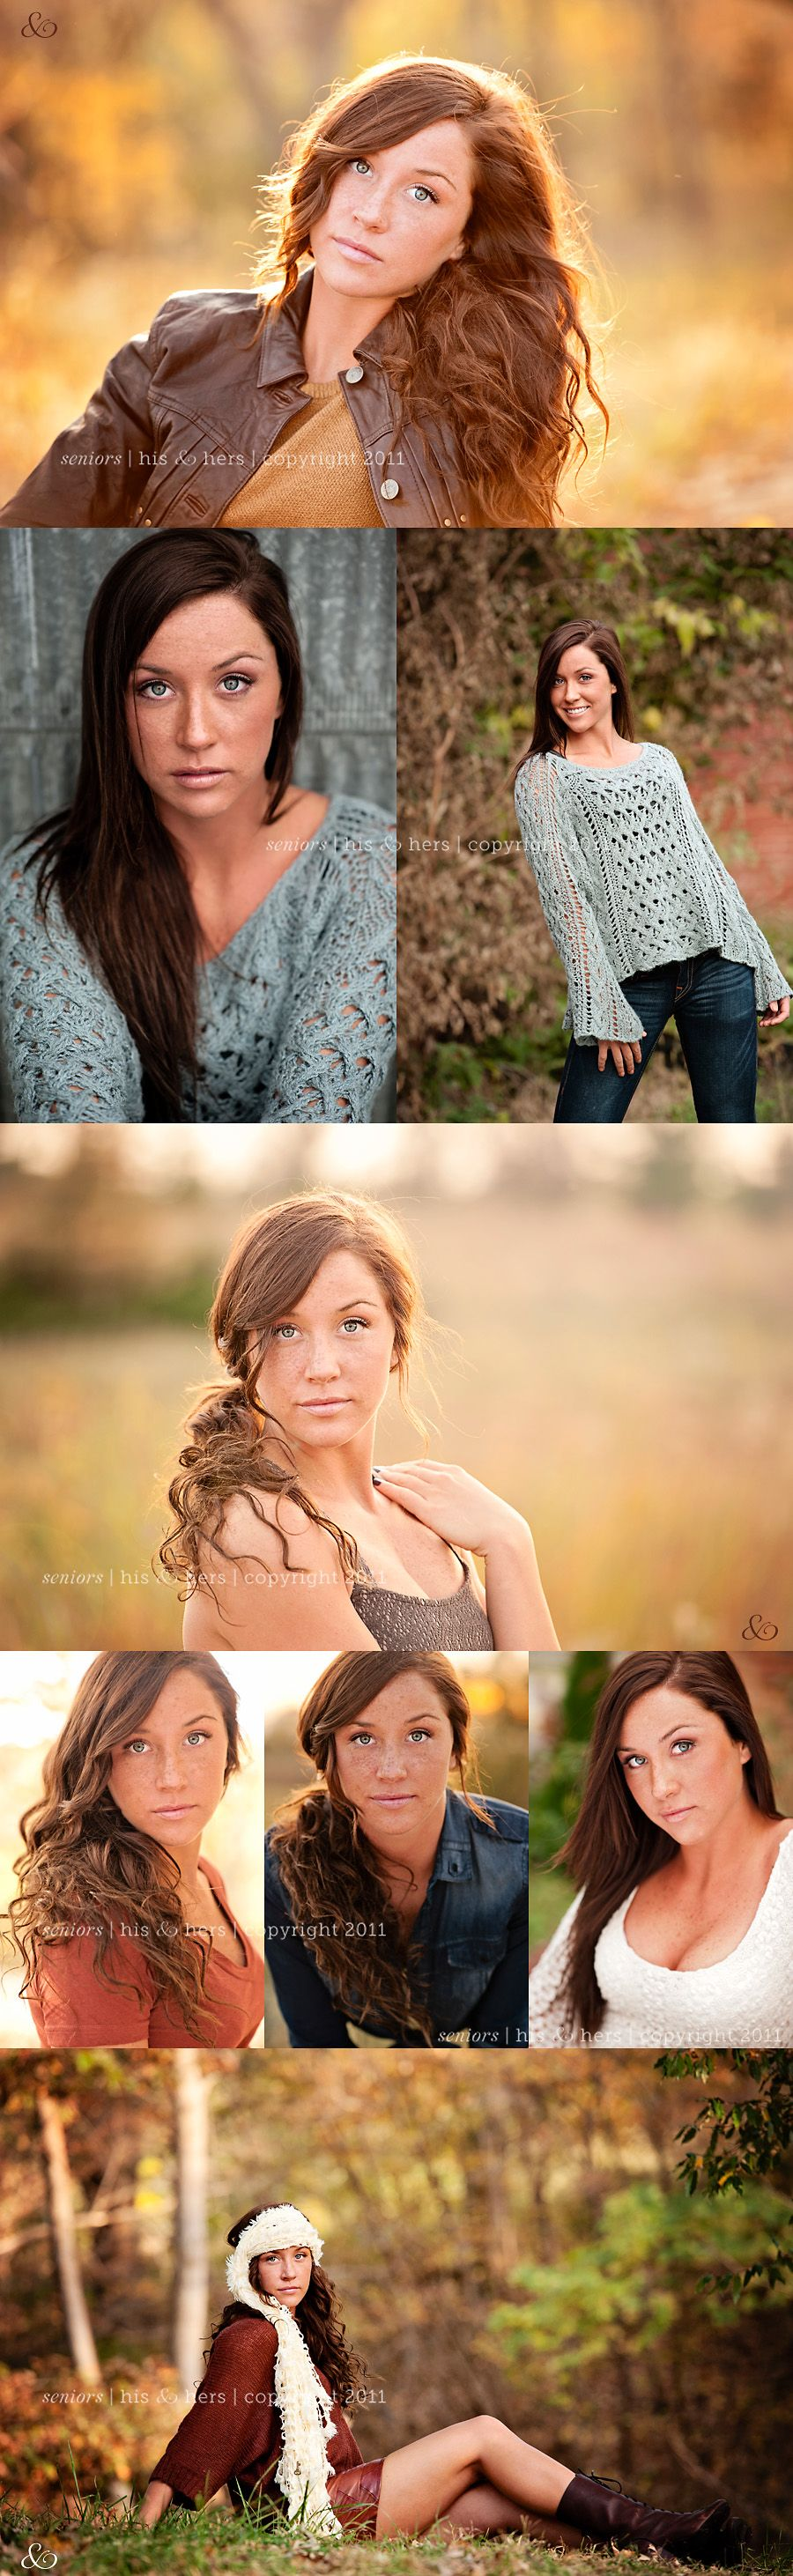 Aspen, Class of 2012 | Des Moines Area Senior Portraits Photographer